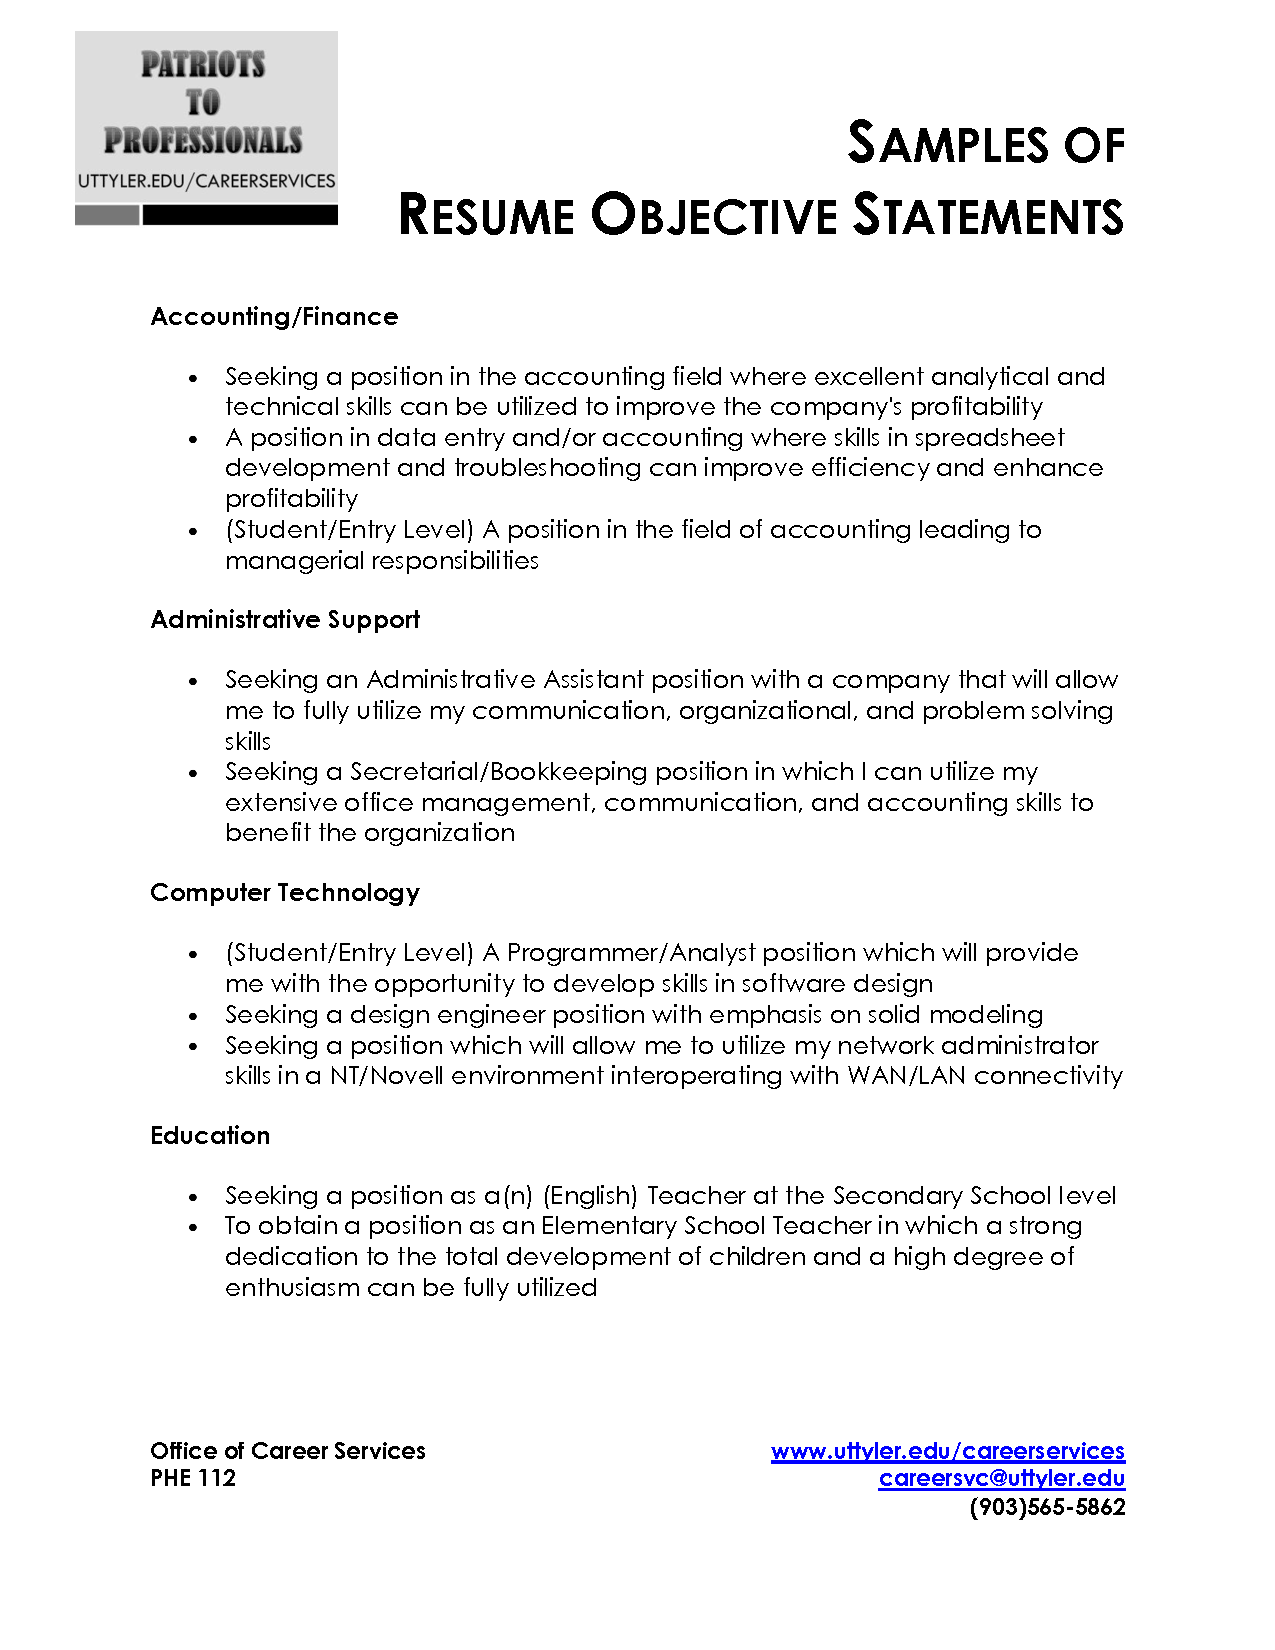 whats a good resume objective